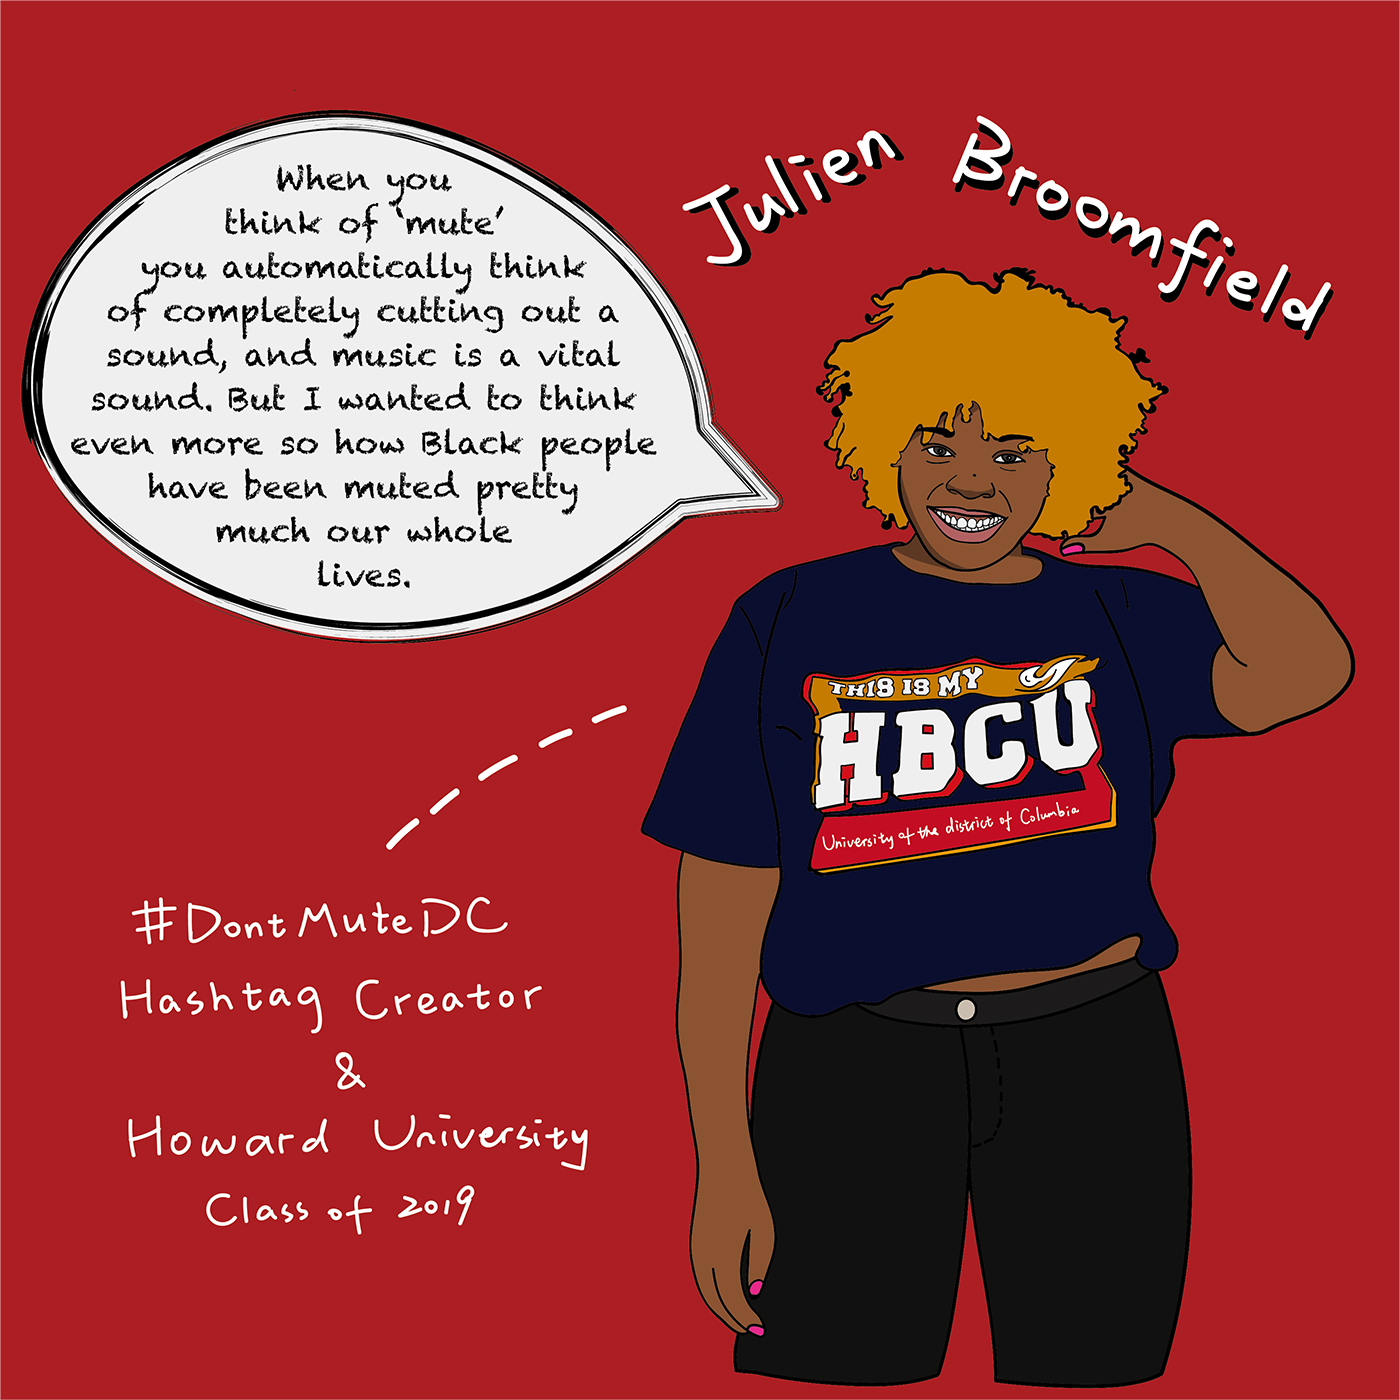 Julien Broomfield, Howard University class of 2019, created #DontMuteDC hashtag on April 7, 2019   